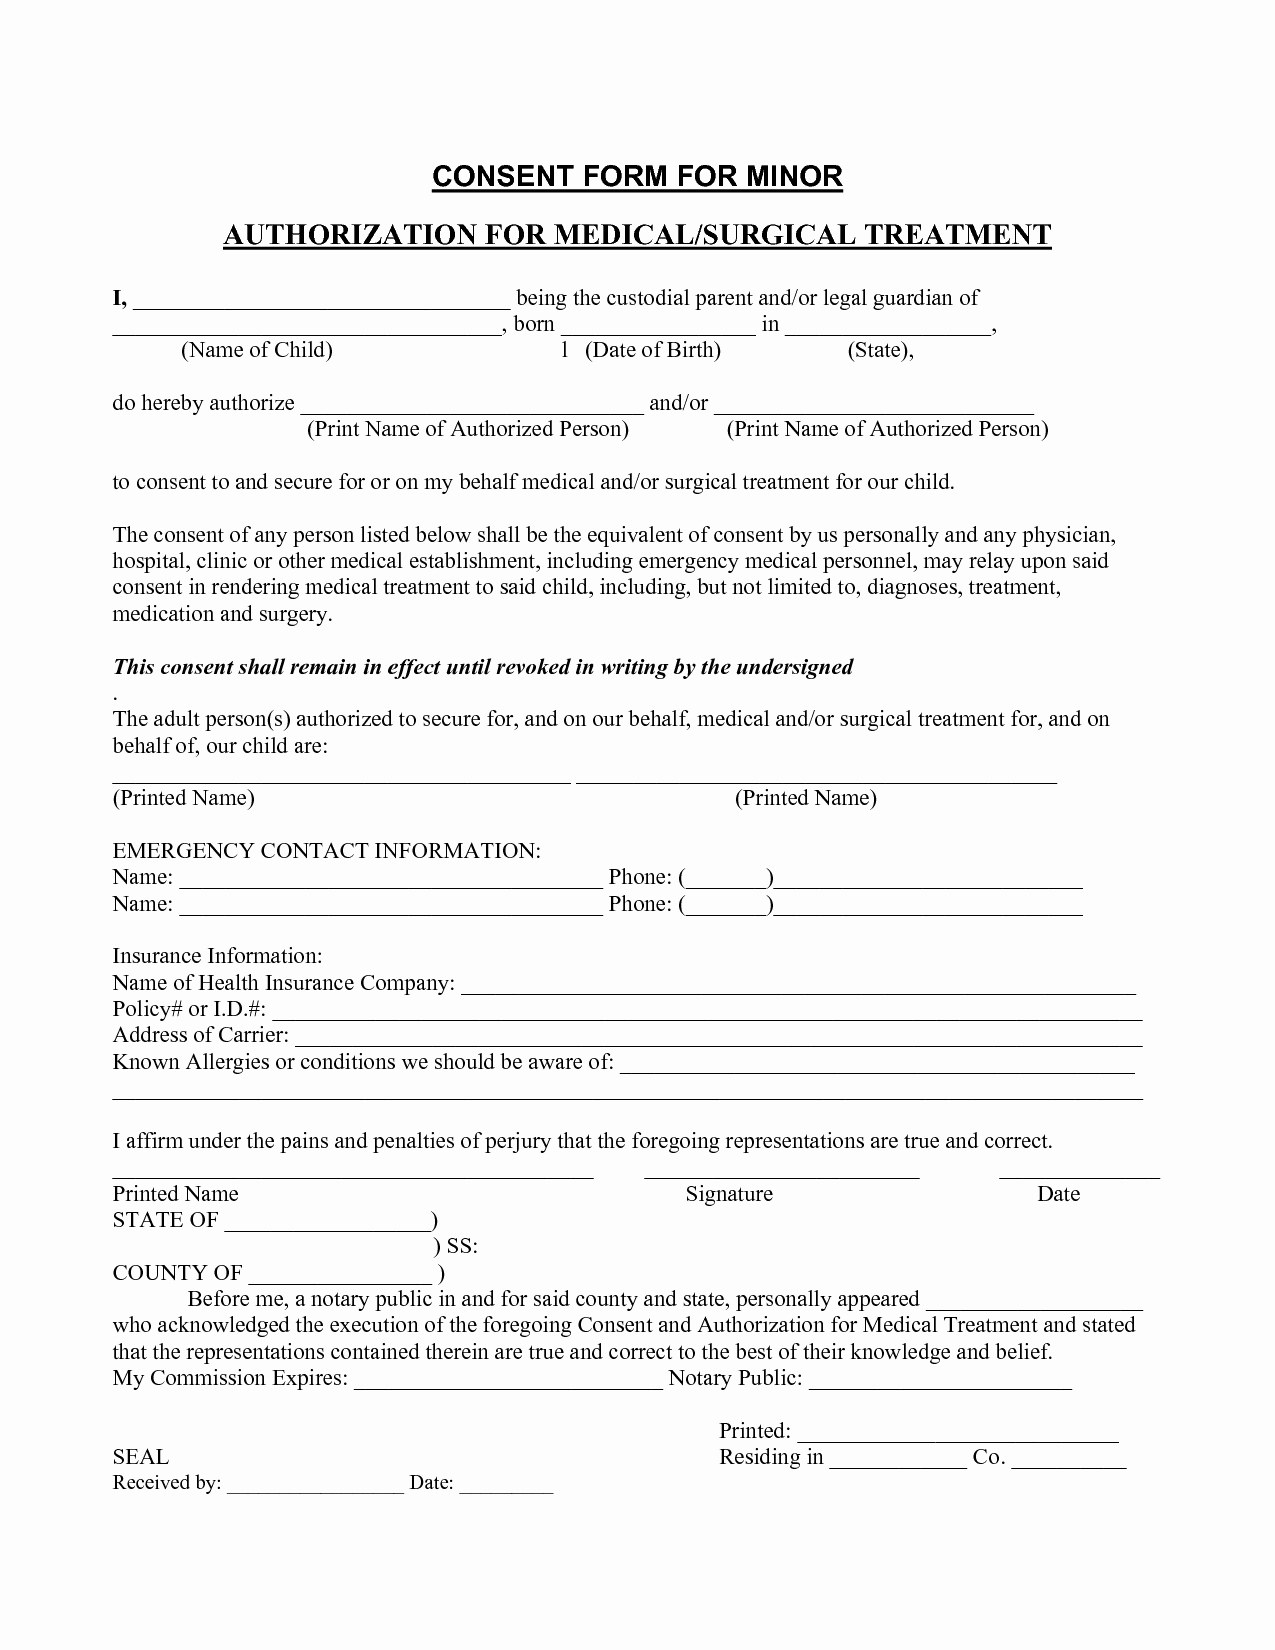 Child Medical Consent form Template Awesome Medical Consent form Template